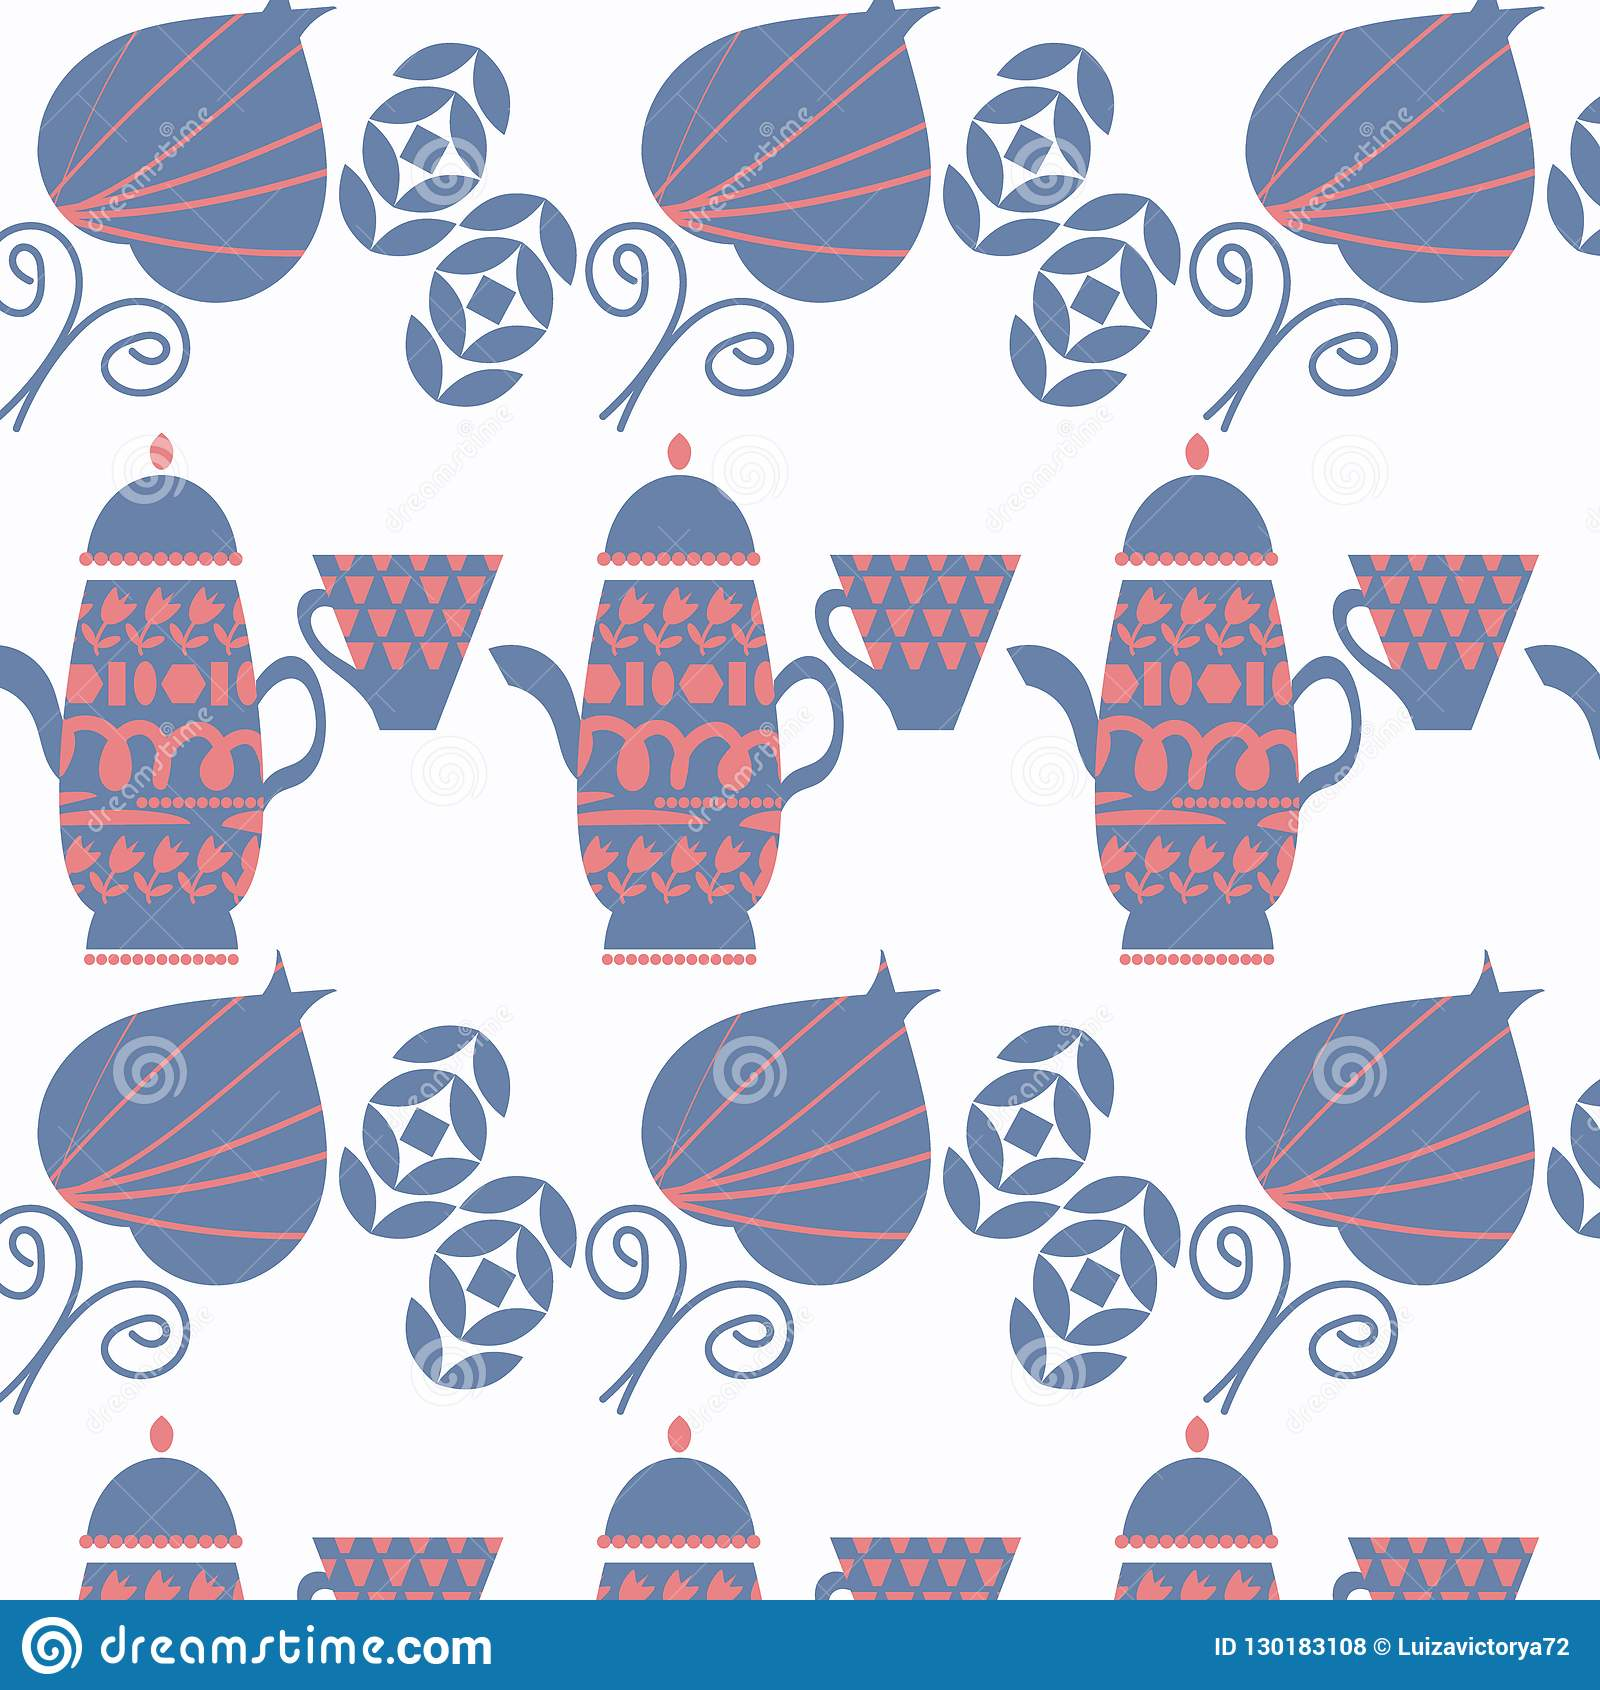 Abstract Tea Pot Vector Background With Leaves And Shapes ...